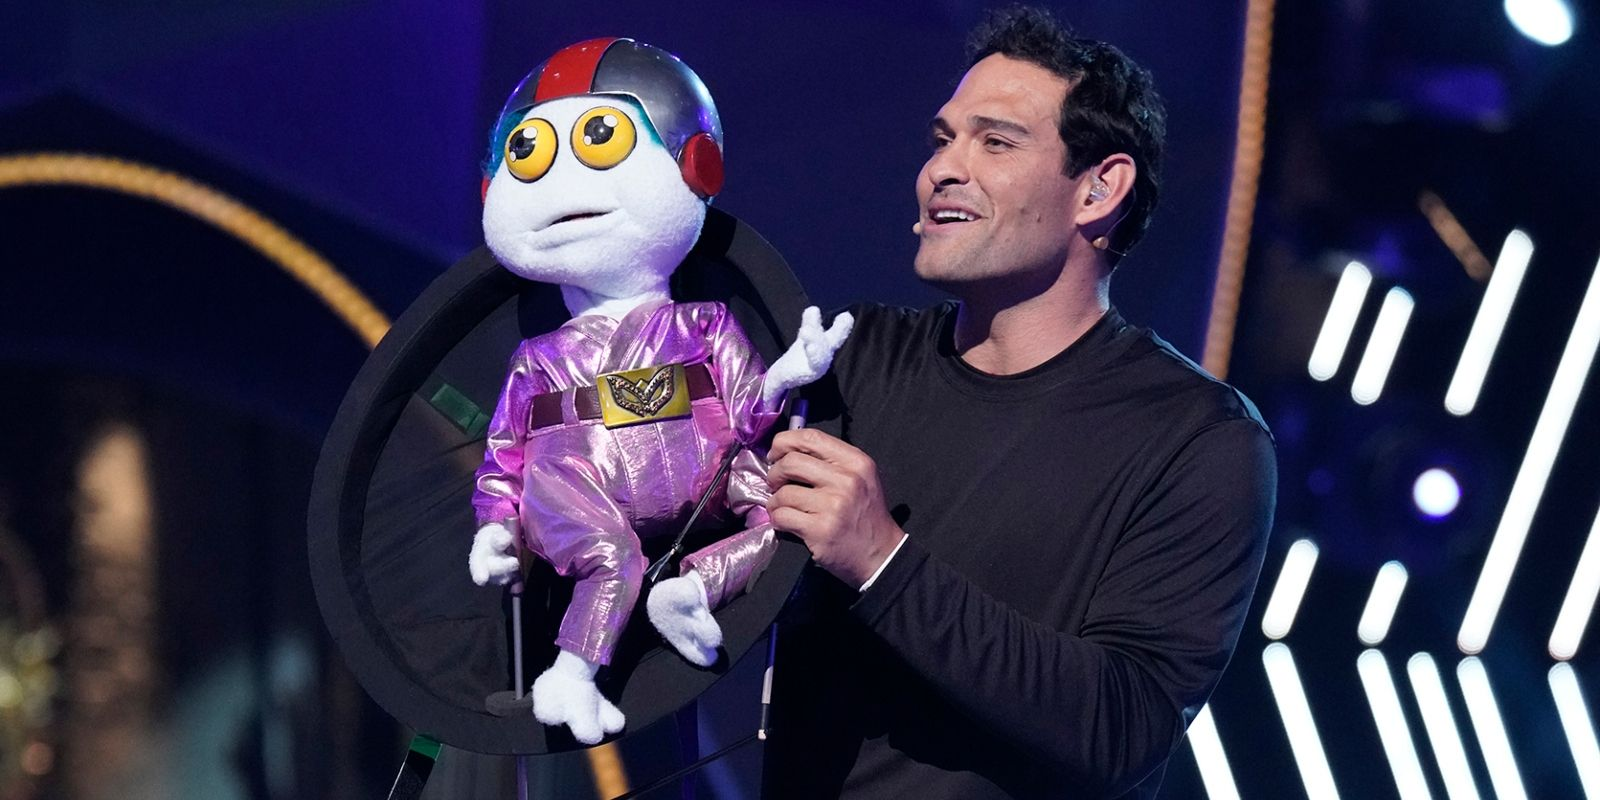 The Masked Singer: Baby Alien Revealed To Be NFL Player Mark Sanchez